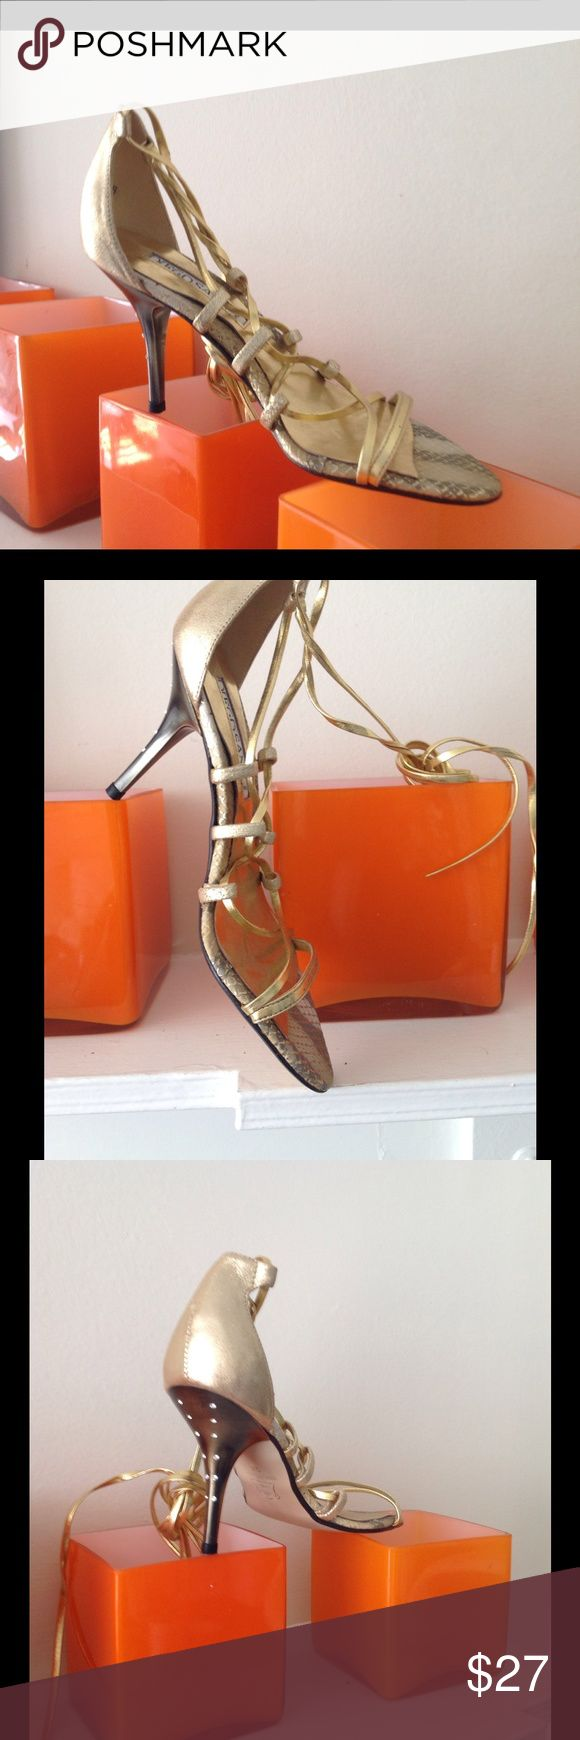 Shoes New! Gold metallic gladiator style high hill shoes. Made in Spine by Diego Sanz Diego Sanz Shoes Heels